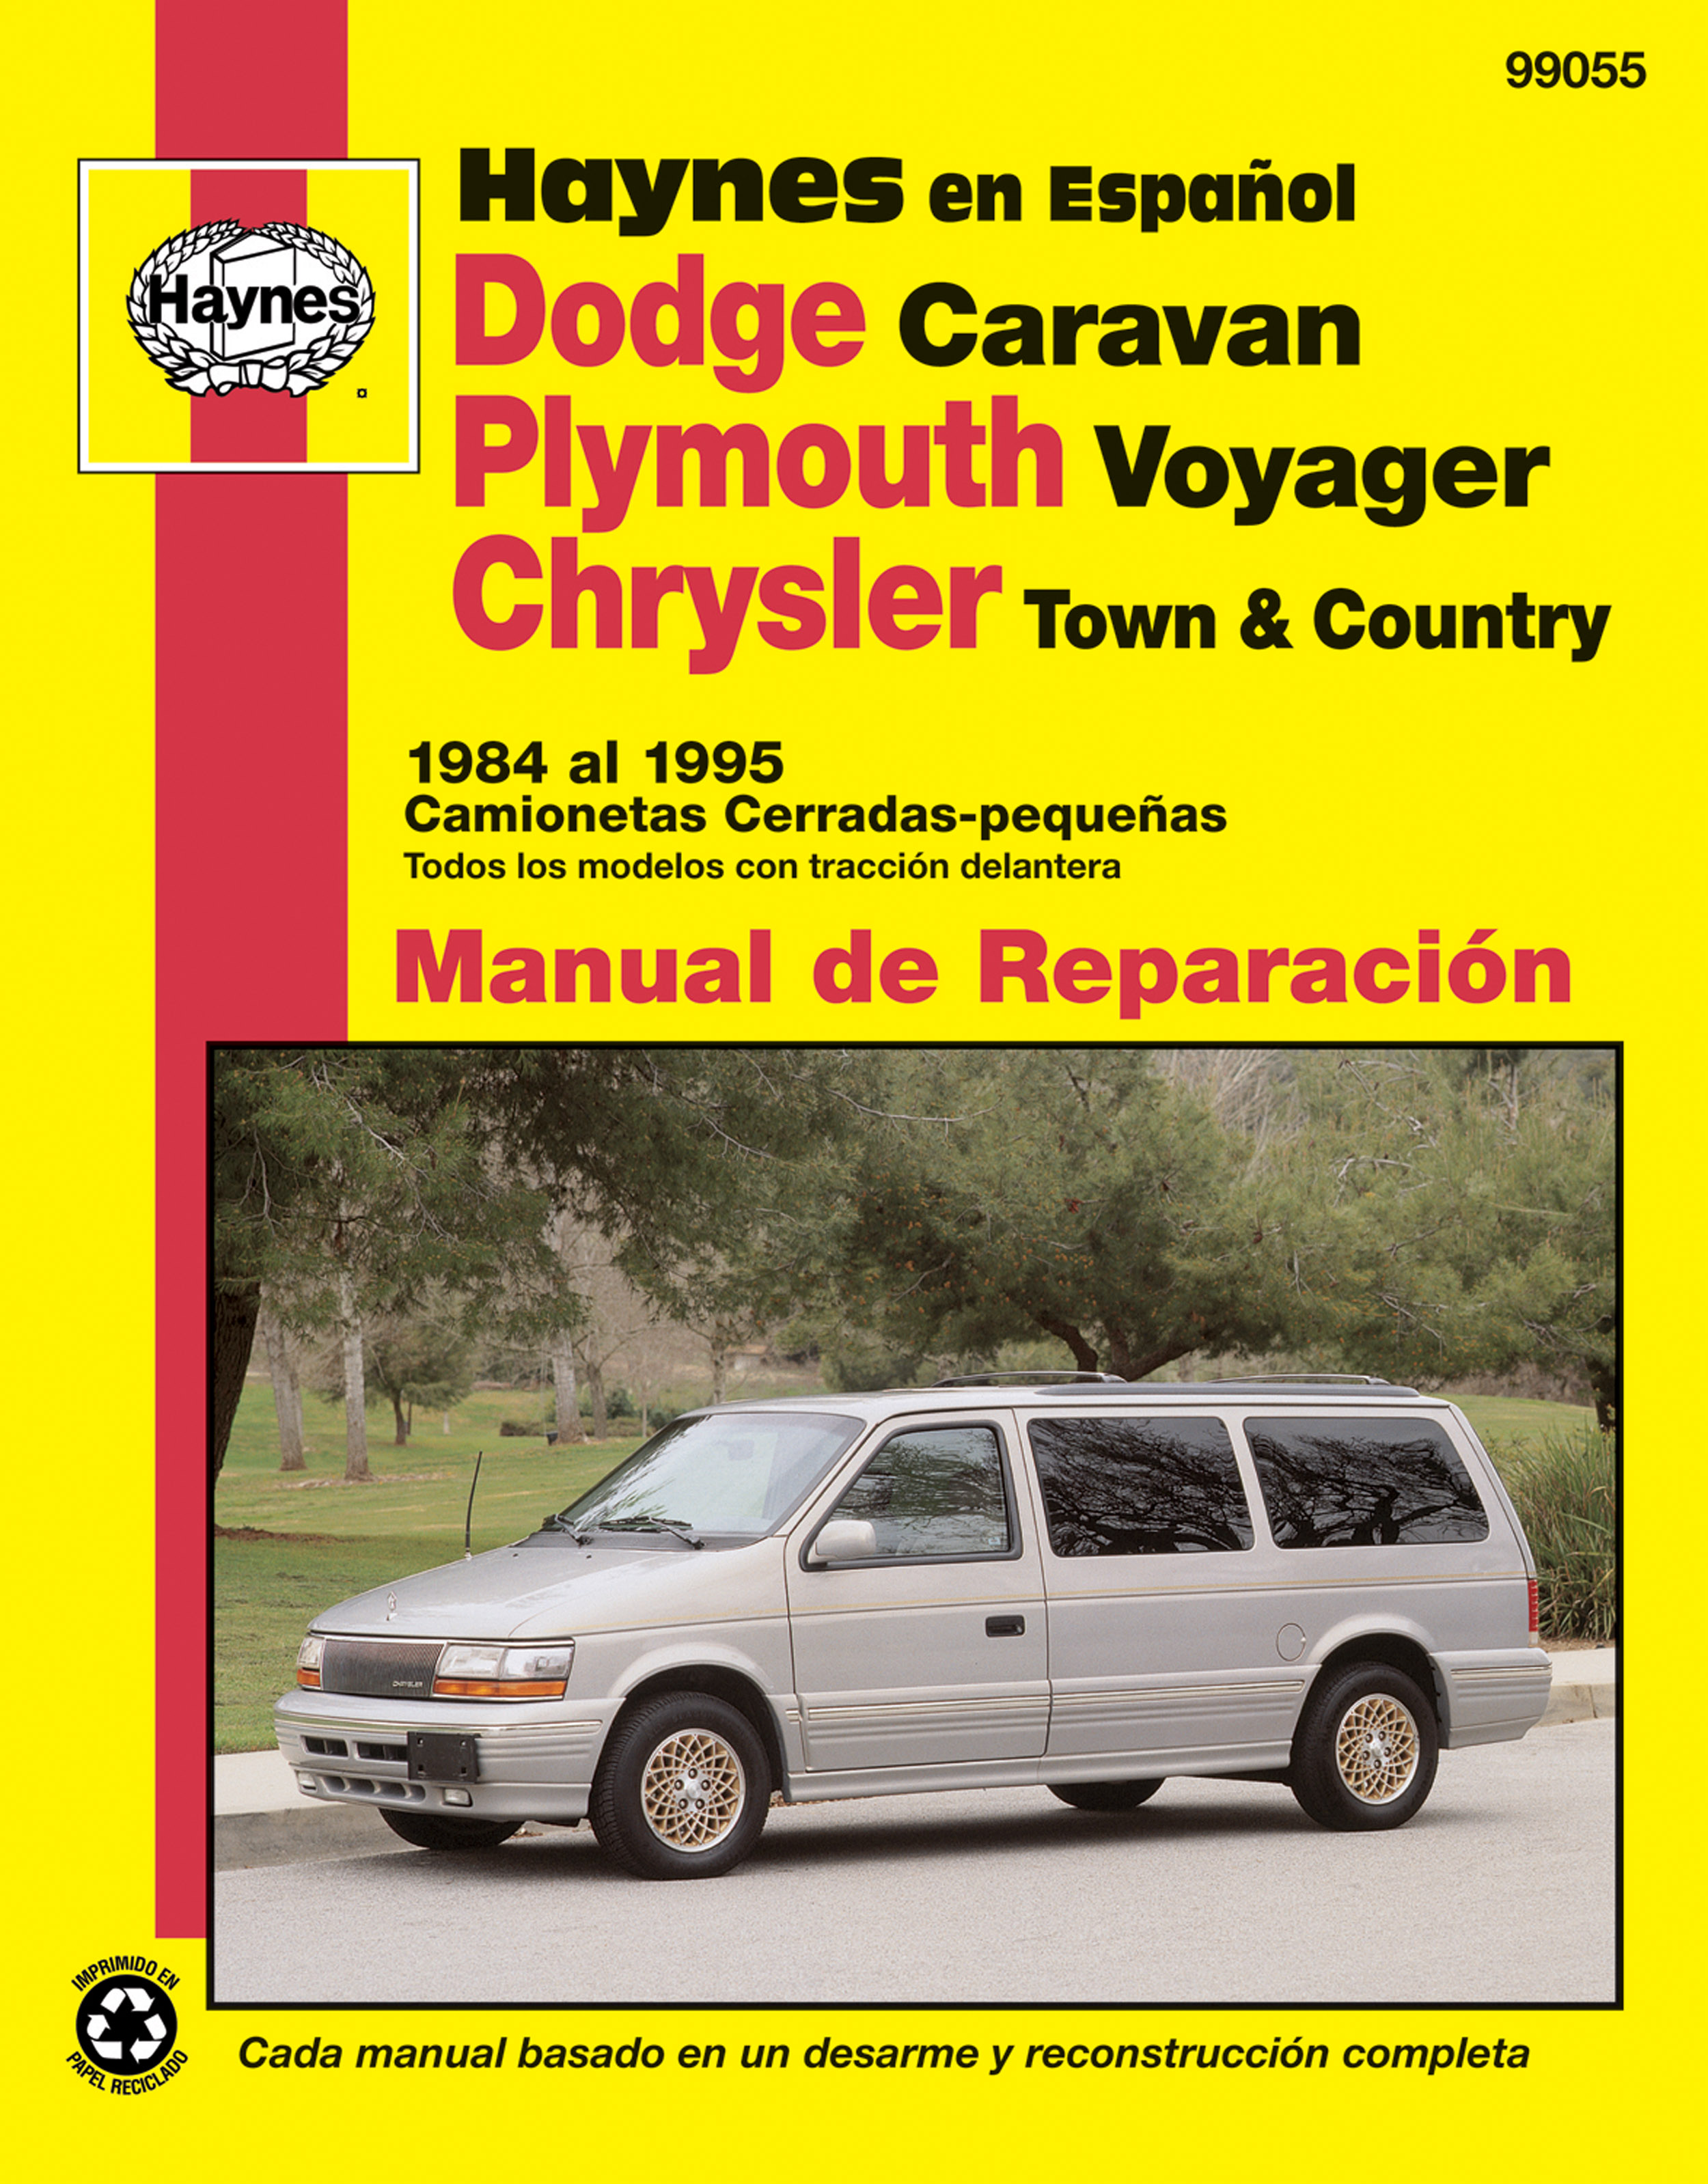 dodge caravan plymouth voyager chrysler town country camionetas rh haynes com Dodge Caravan Parts Manual 1995 Dodge Grand Caravan Manual